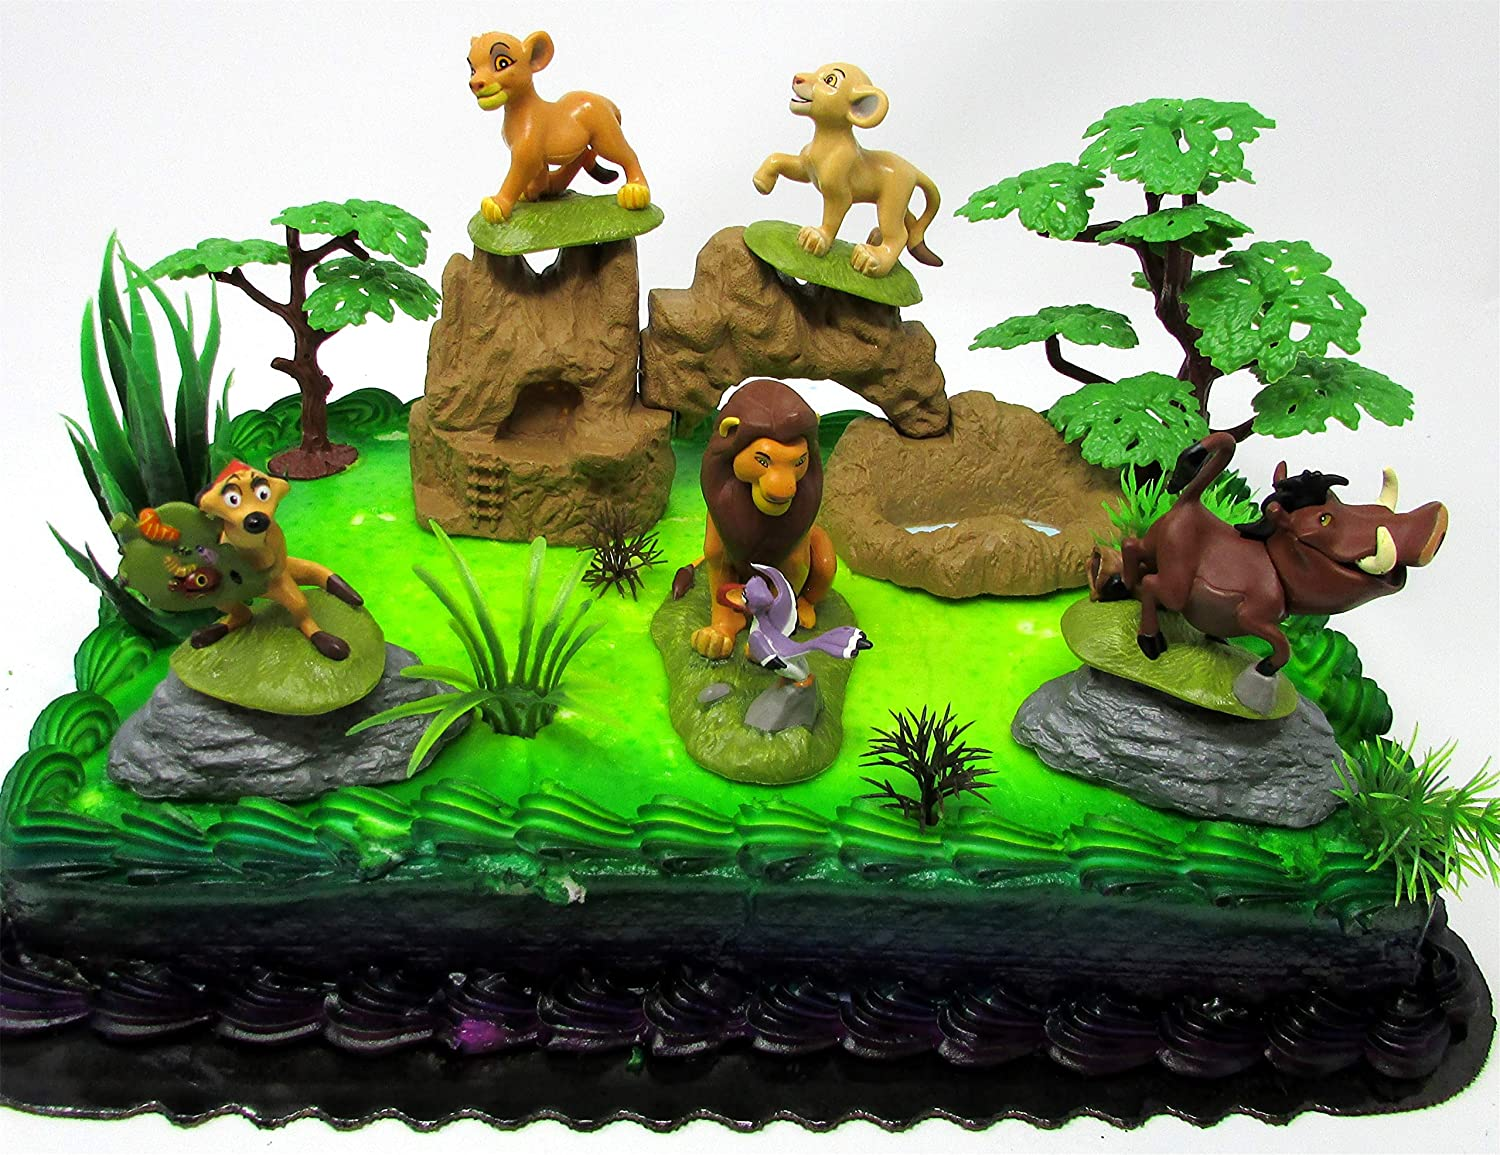 Amazon Lion King Birthday Cake Topper Set Featuring Figures And Decorative Themed Accessories Toys Games